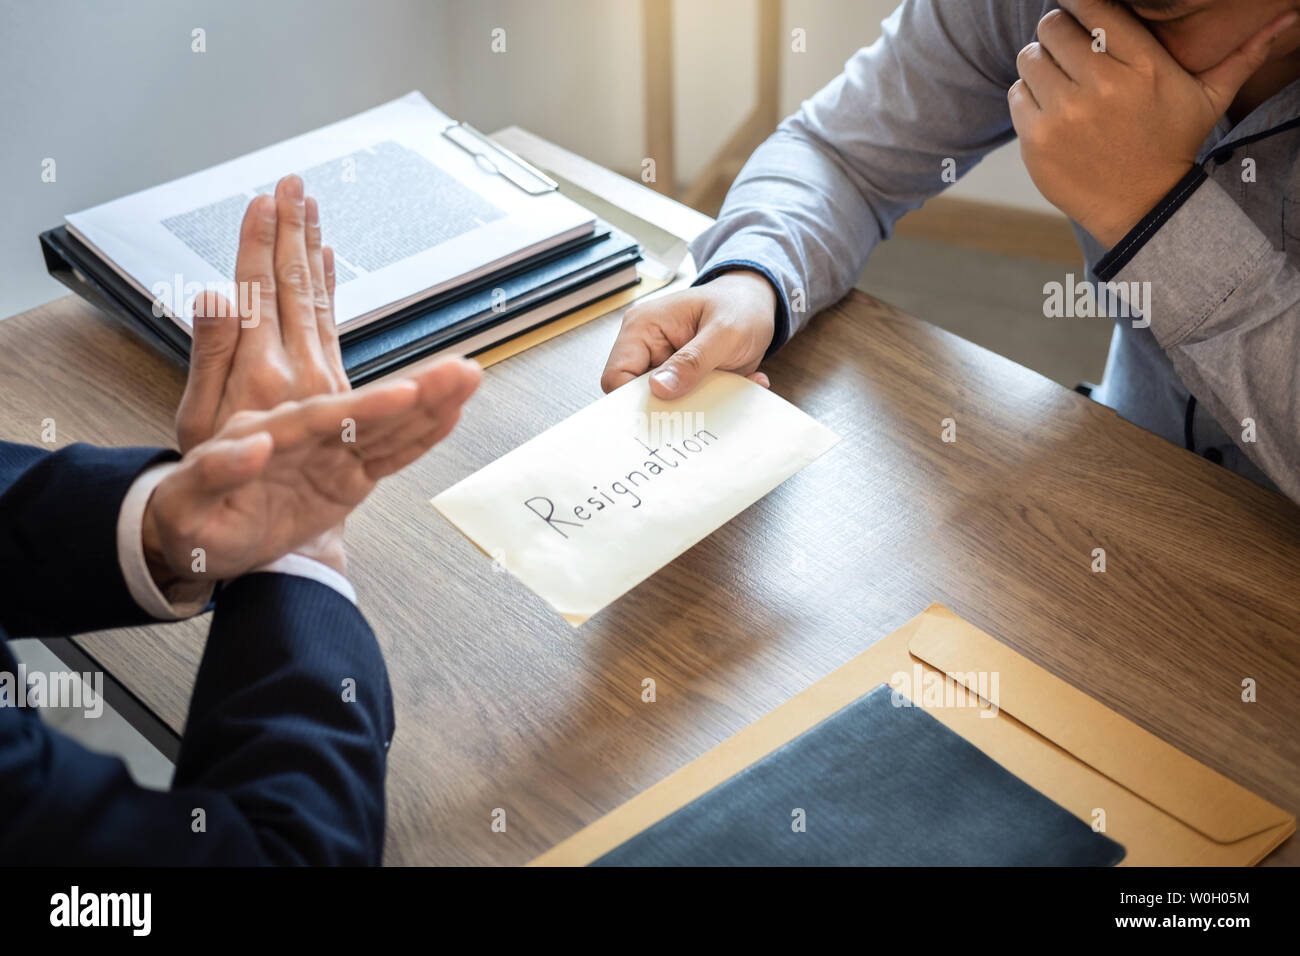 Businessman sending a resignation letter to employer boss in order to dismiss contract, changing and resigning from work concept. - Stock Image